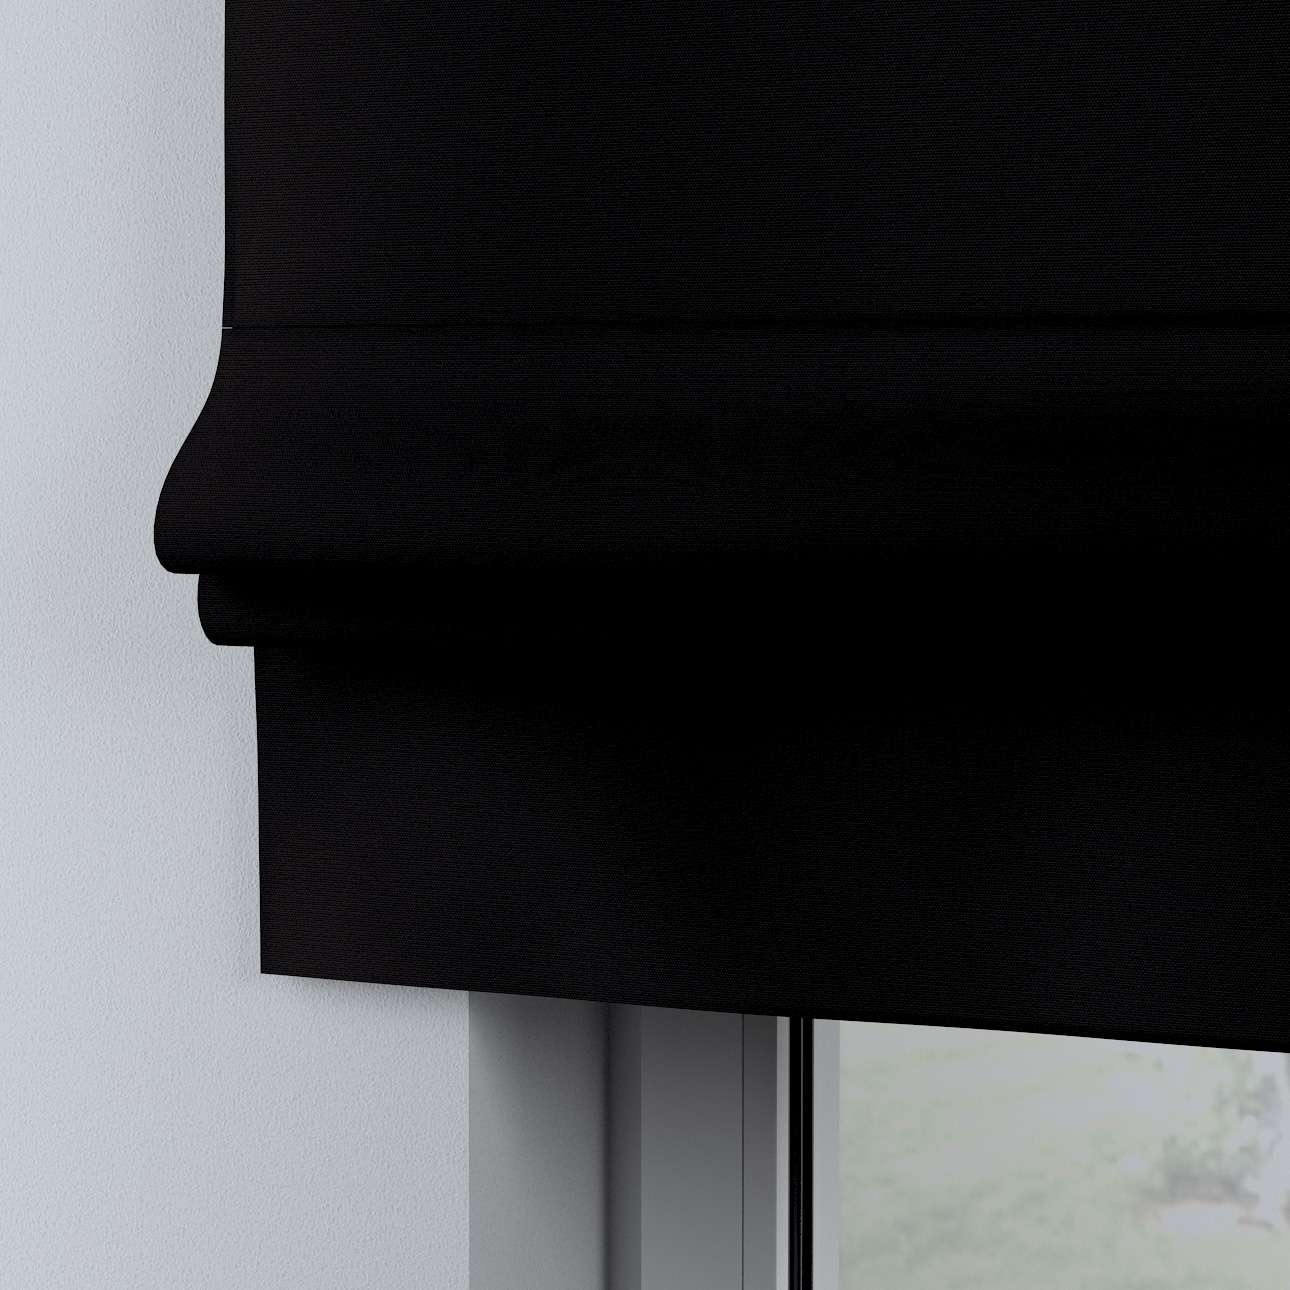 Sammy roman blind in collection Cotton Story, fabric: 702-09